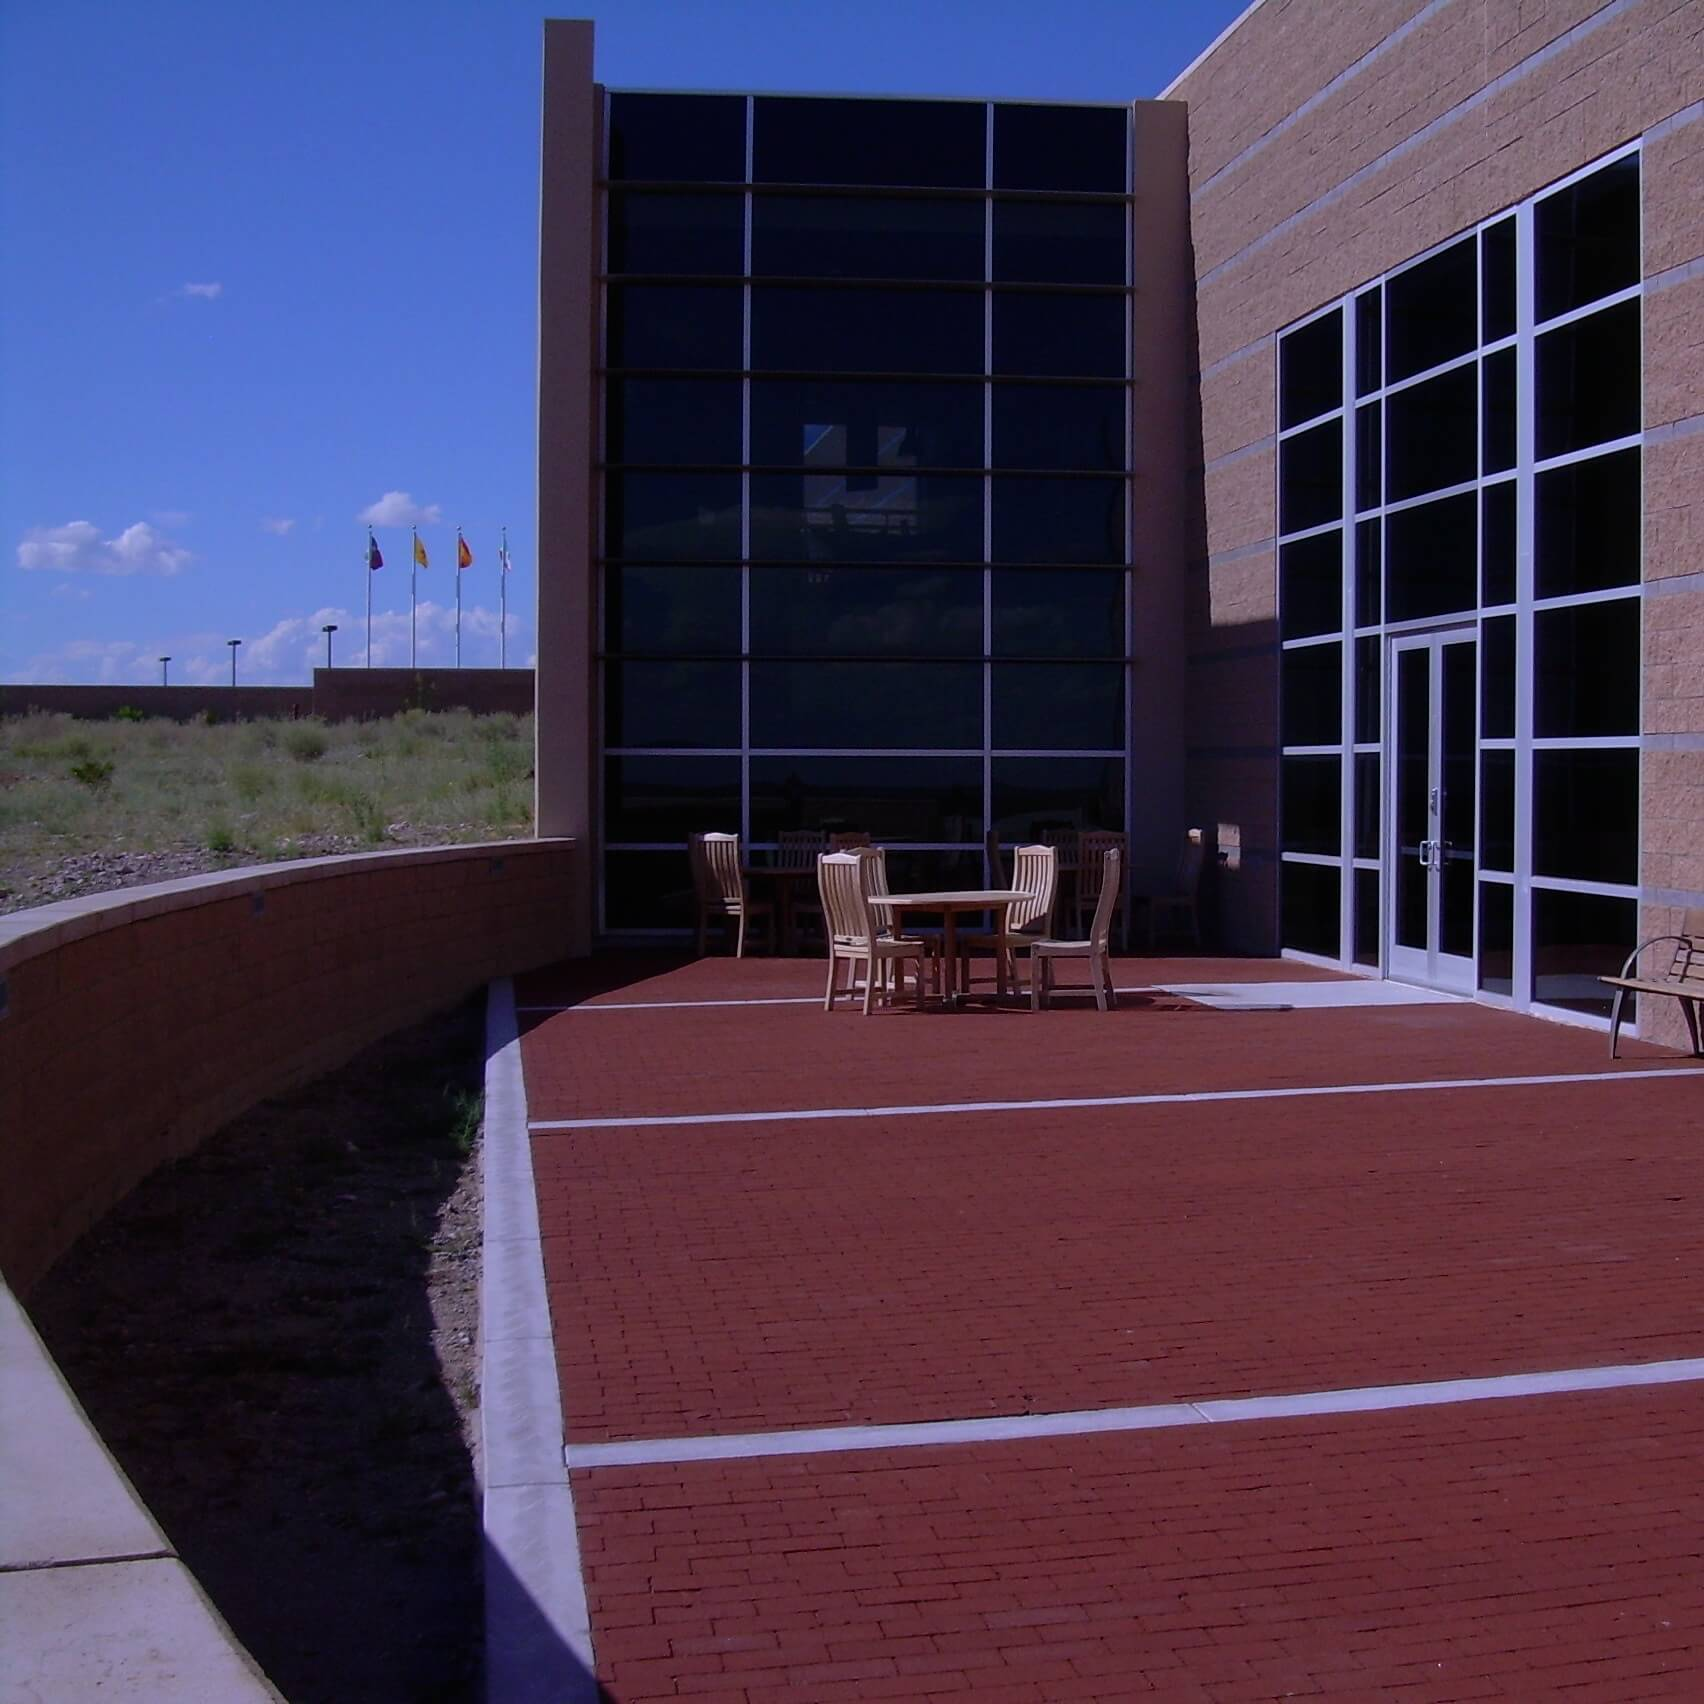 The red brick patio overlooks the Jornada del Muerto.<br><br><b>Photo by El Camino Real HTS</b>